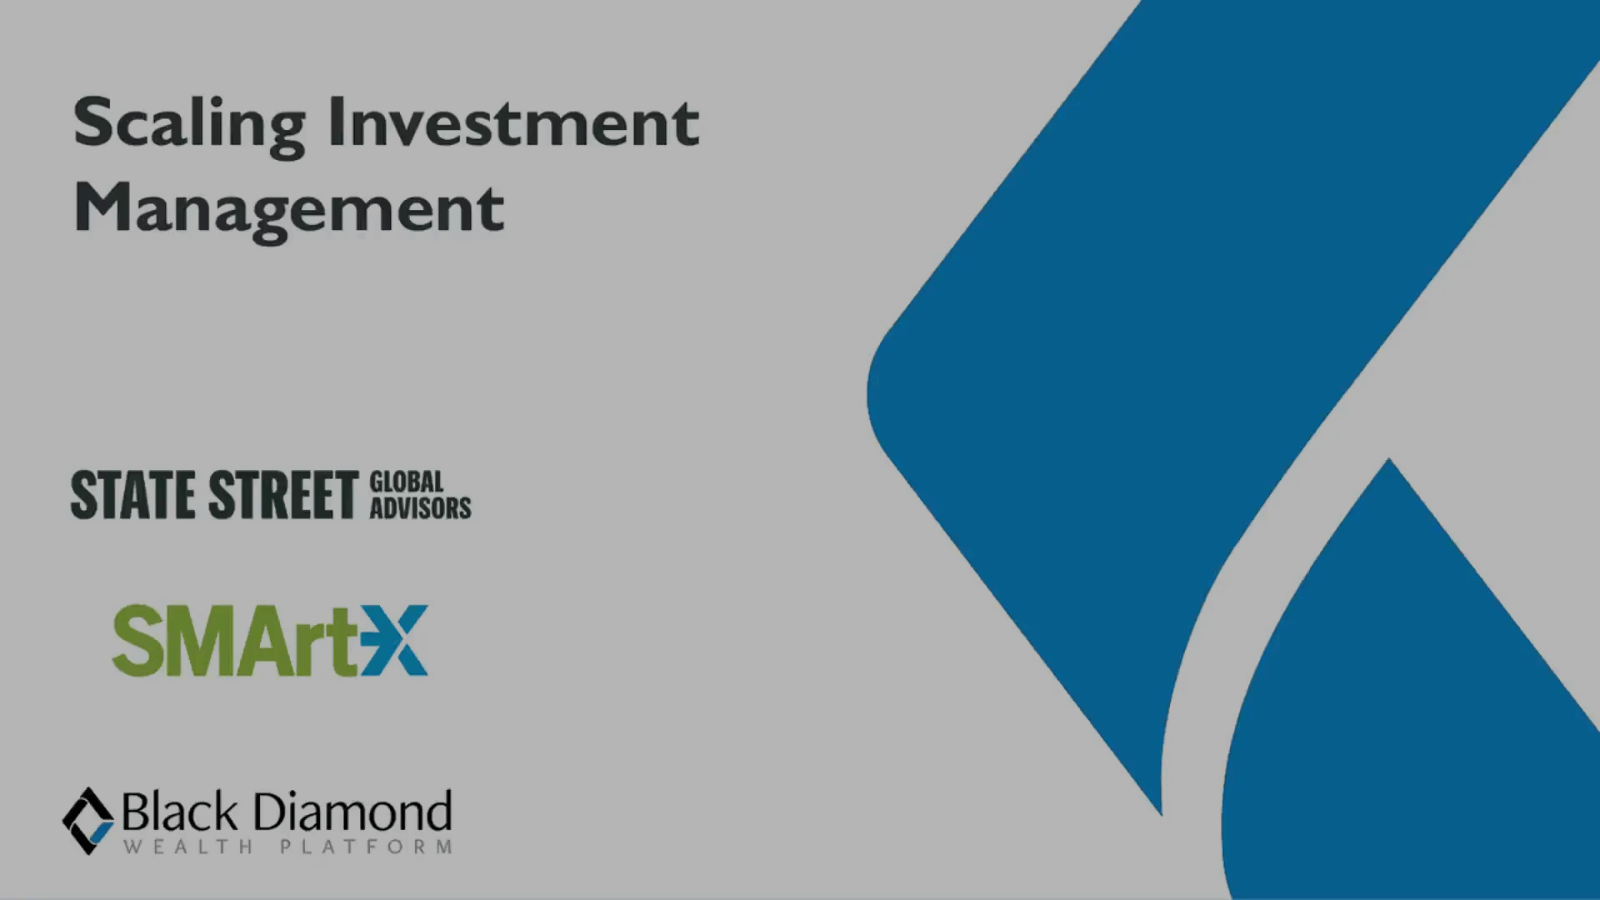 poster image for Black Diamond Scaling Investment Management